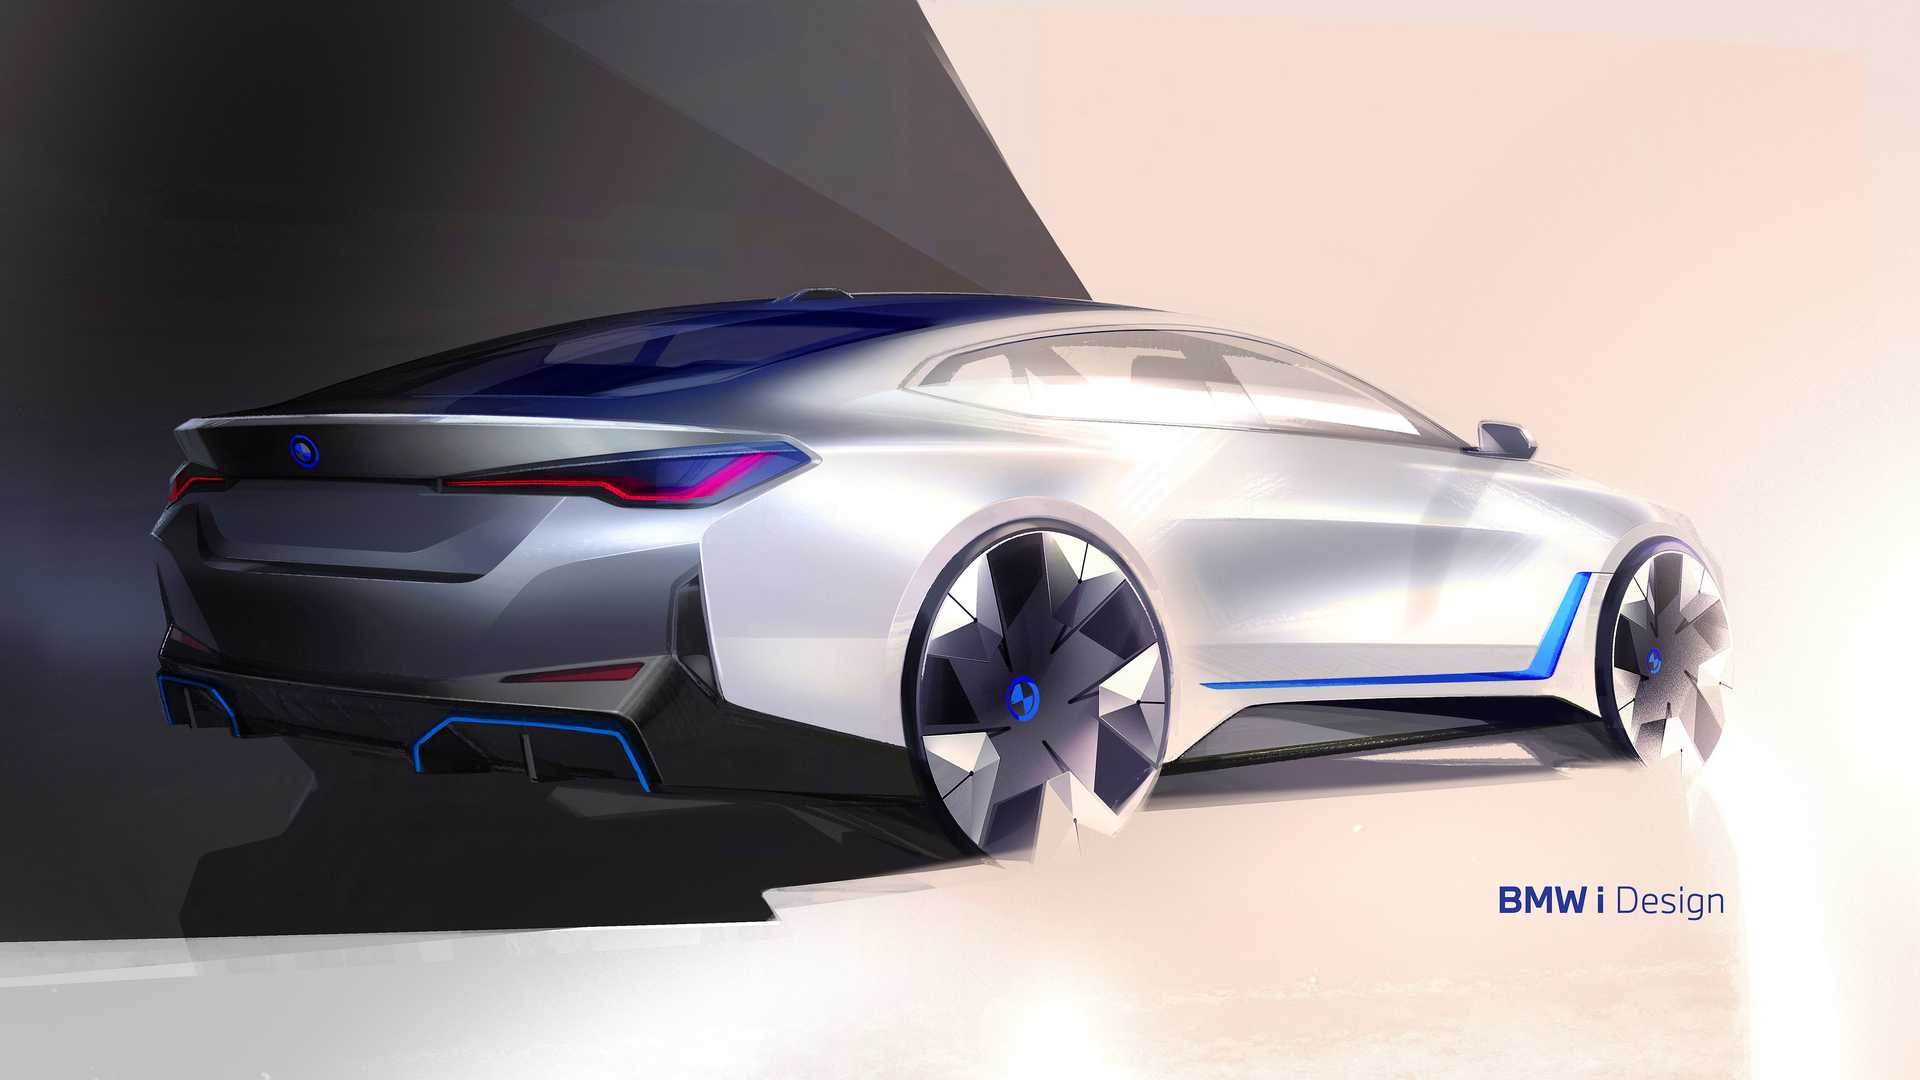 1617373561 201 BMW in response to critics Our electric cars are more BMW in response to critics: Our electric cars are more beautiful than other brands 8